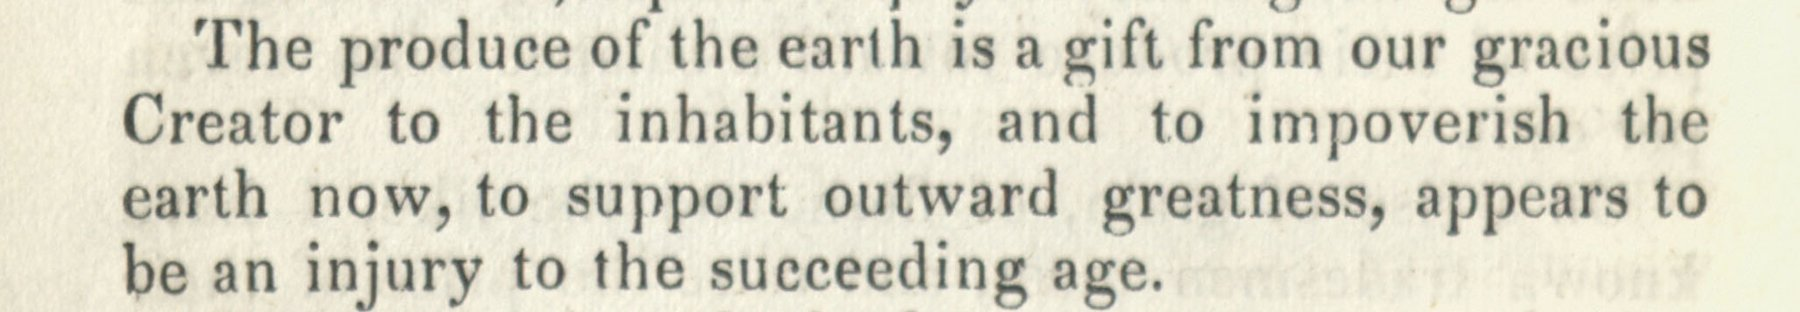 The produce of the earth is a gift from our gracious Creator to the inhabitants, and to impoverish the earth now, to support outward greatness, appears to be an injury to the succeeding age. John Woolman